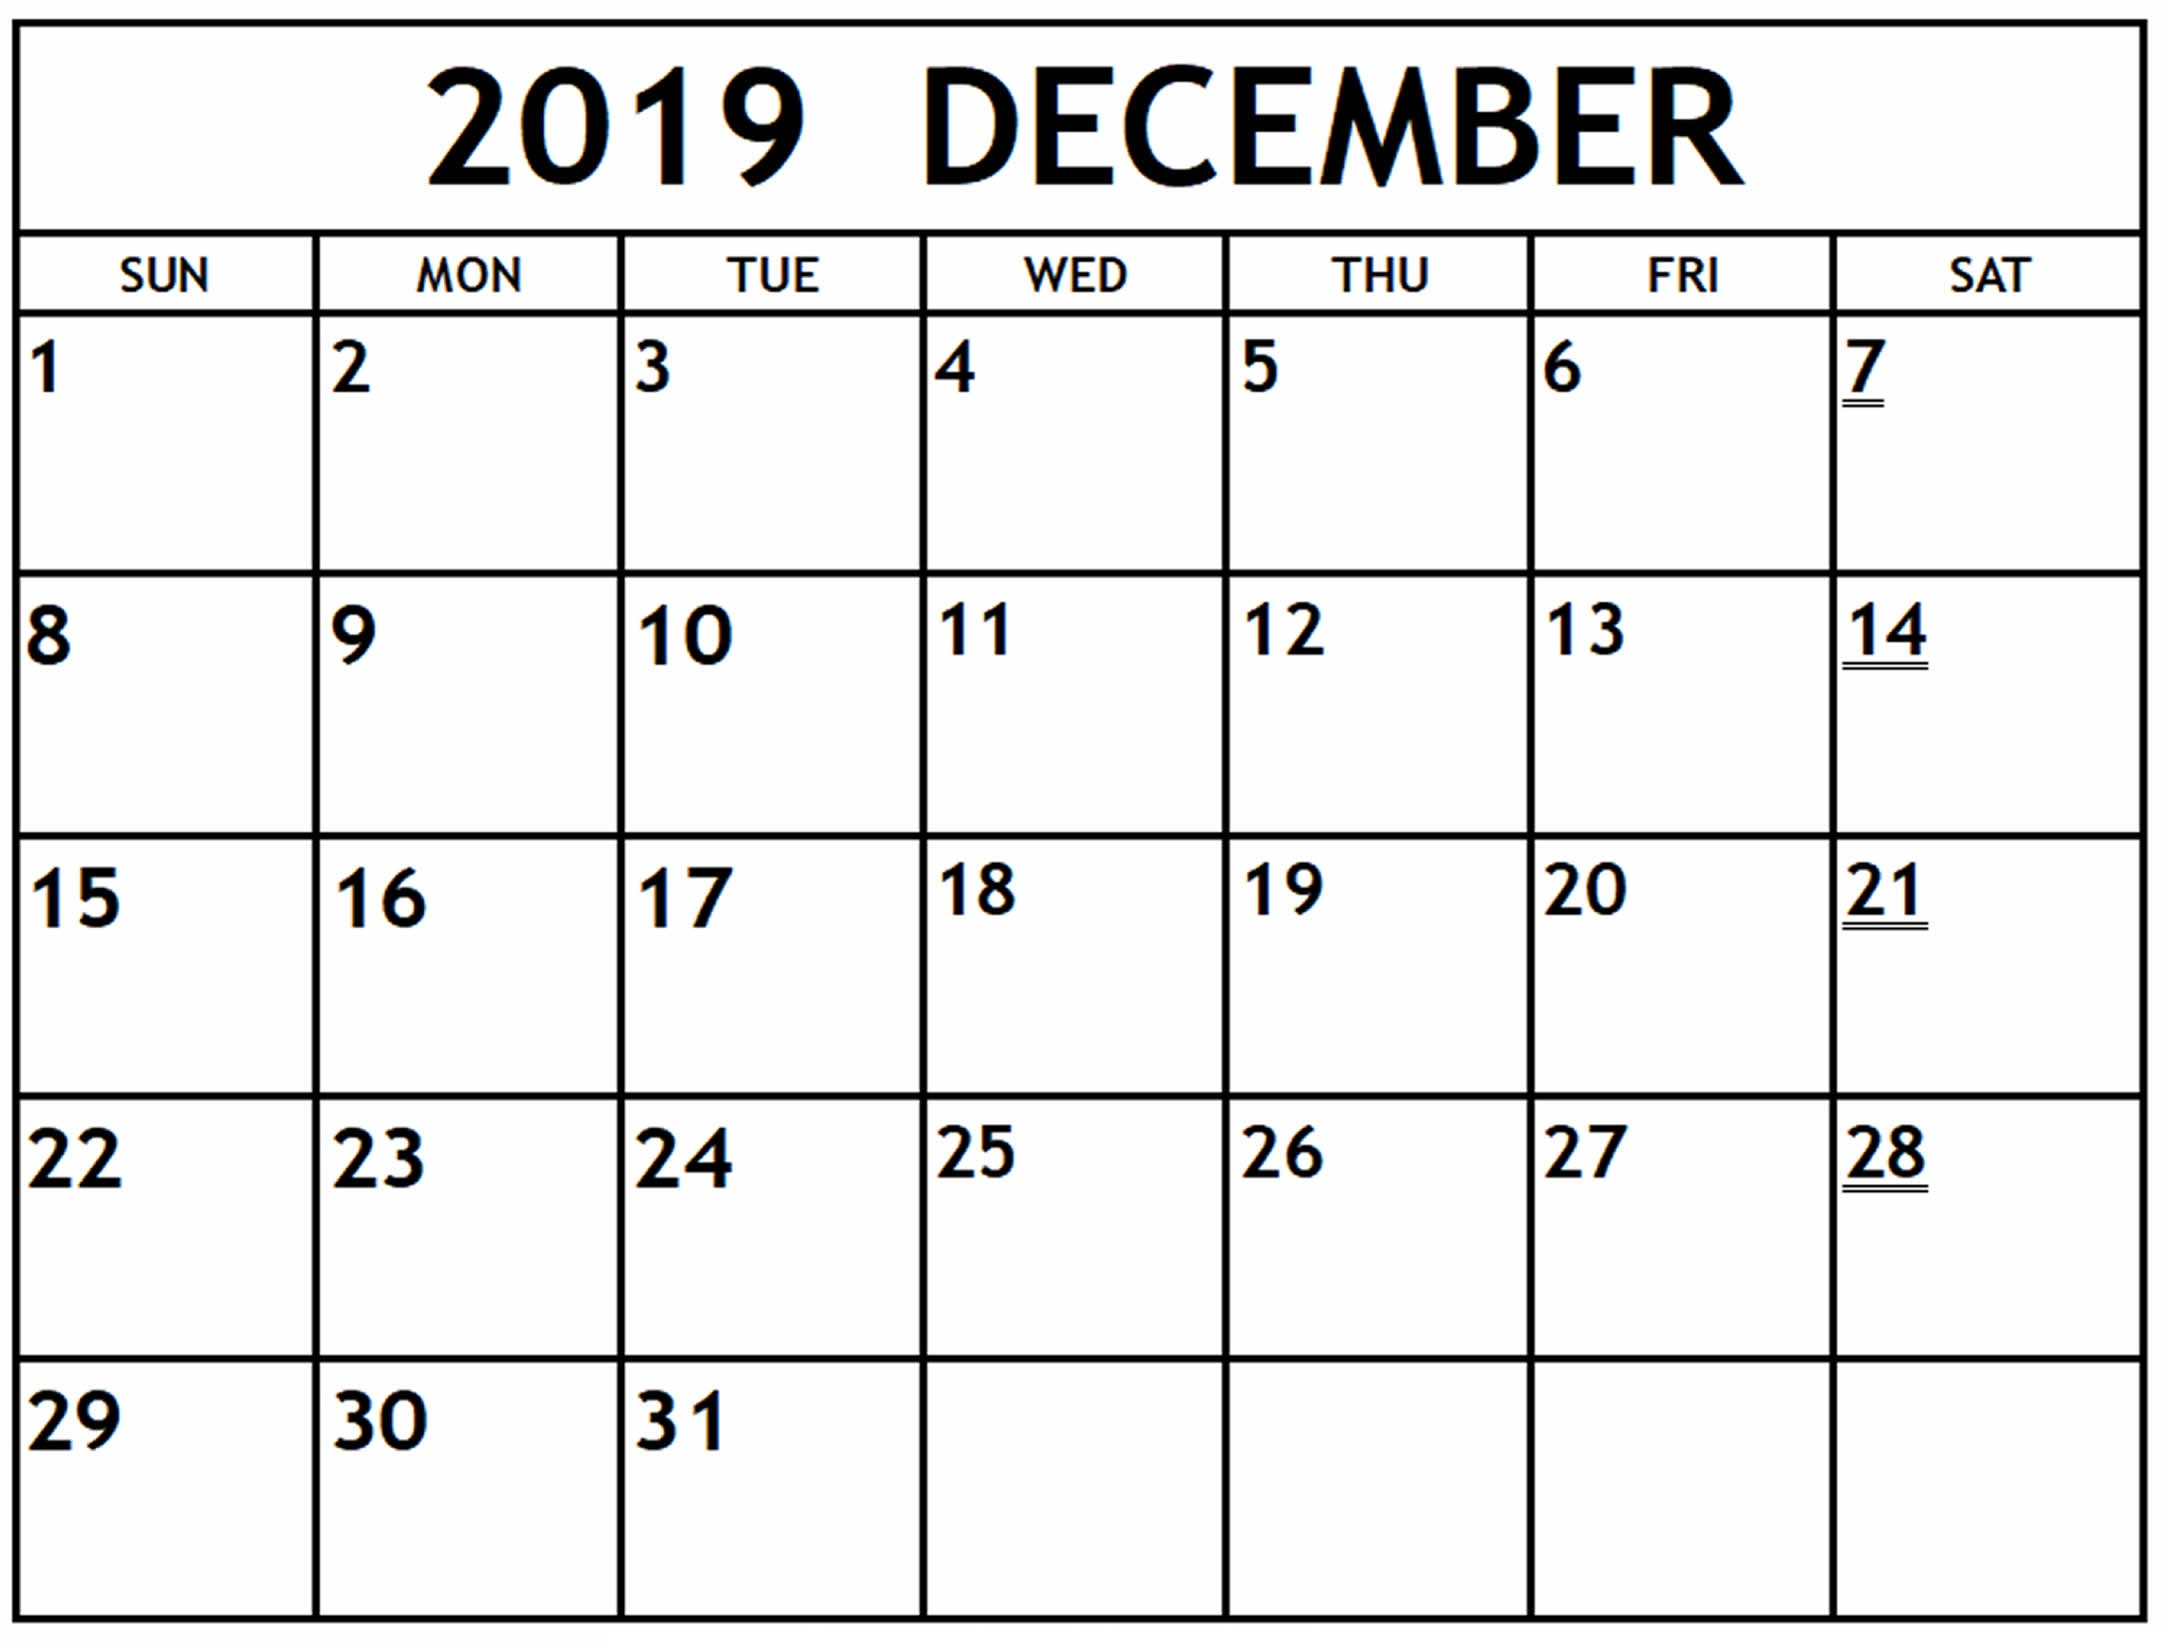 Calendar December 2019 Printable For Desktop